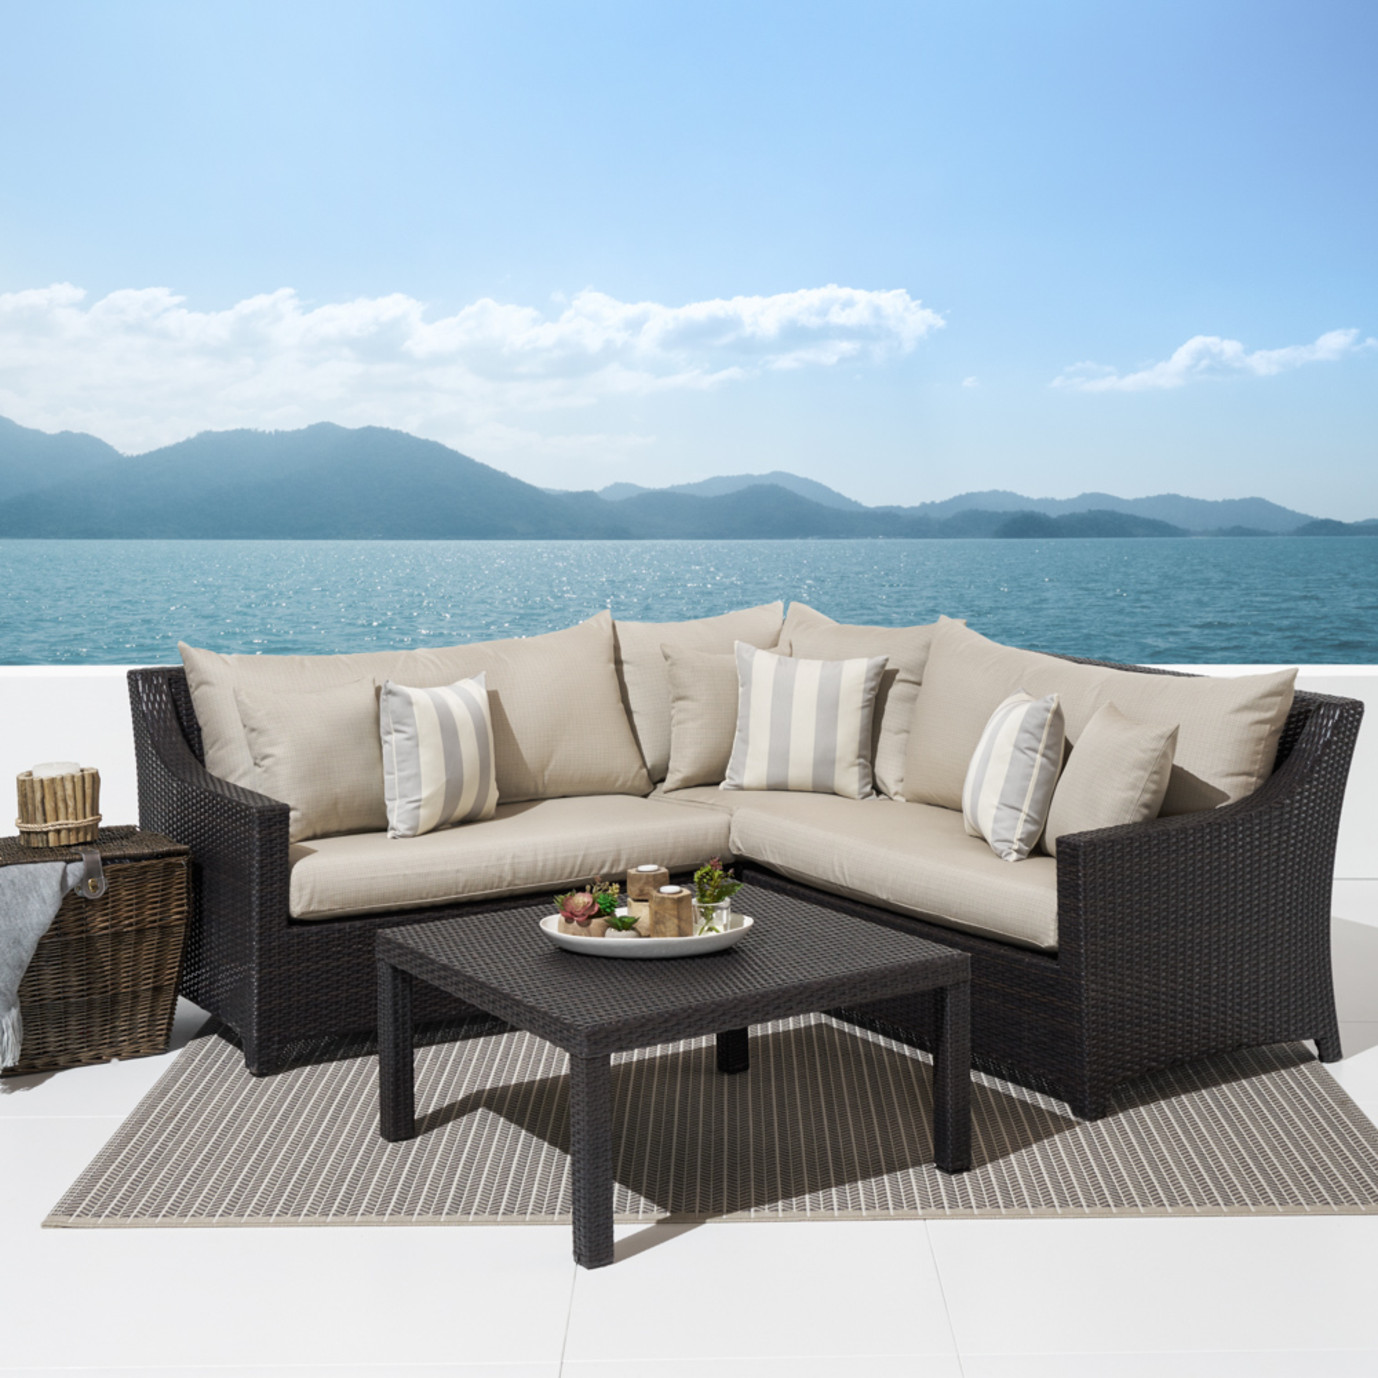 Deco™ 4 Piece Sectional and Table - Slate Gray